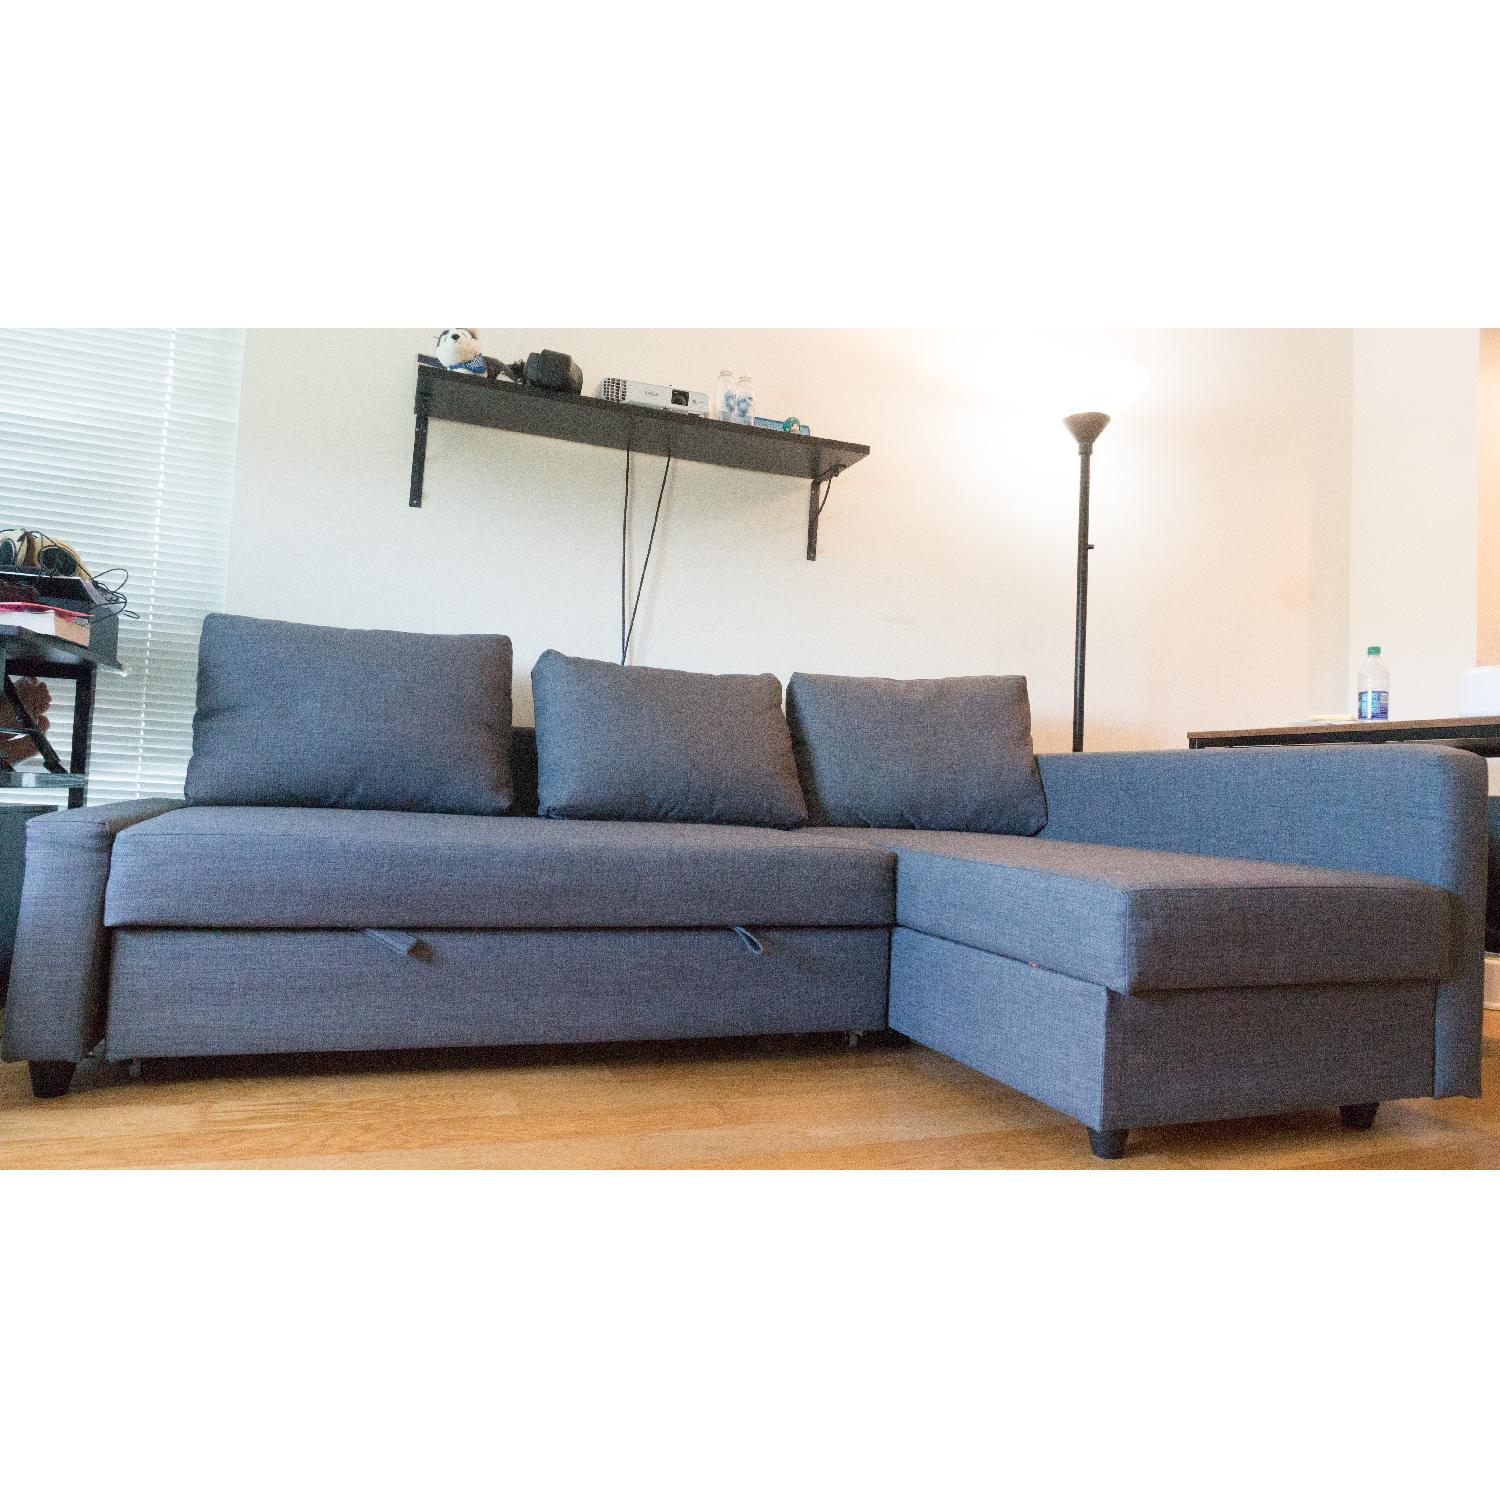 Sensational Ikea Friheten Sleeper Sectional Sofa W Storage Aptdeco Machost Co Dining Chair Design Ideas Machostcouk